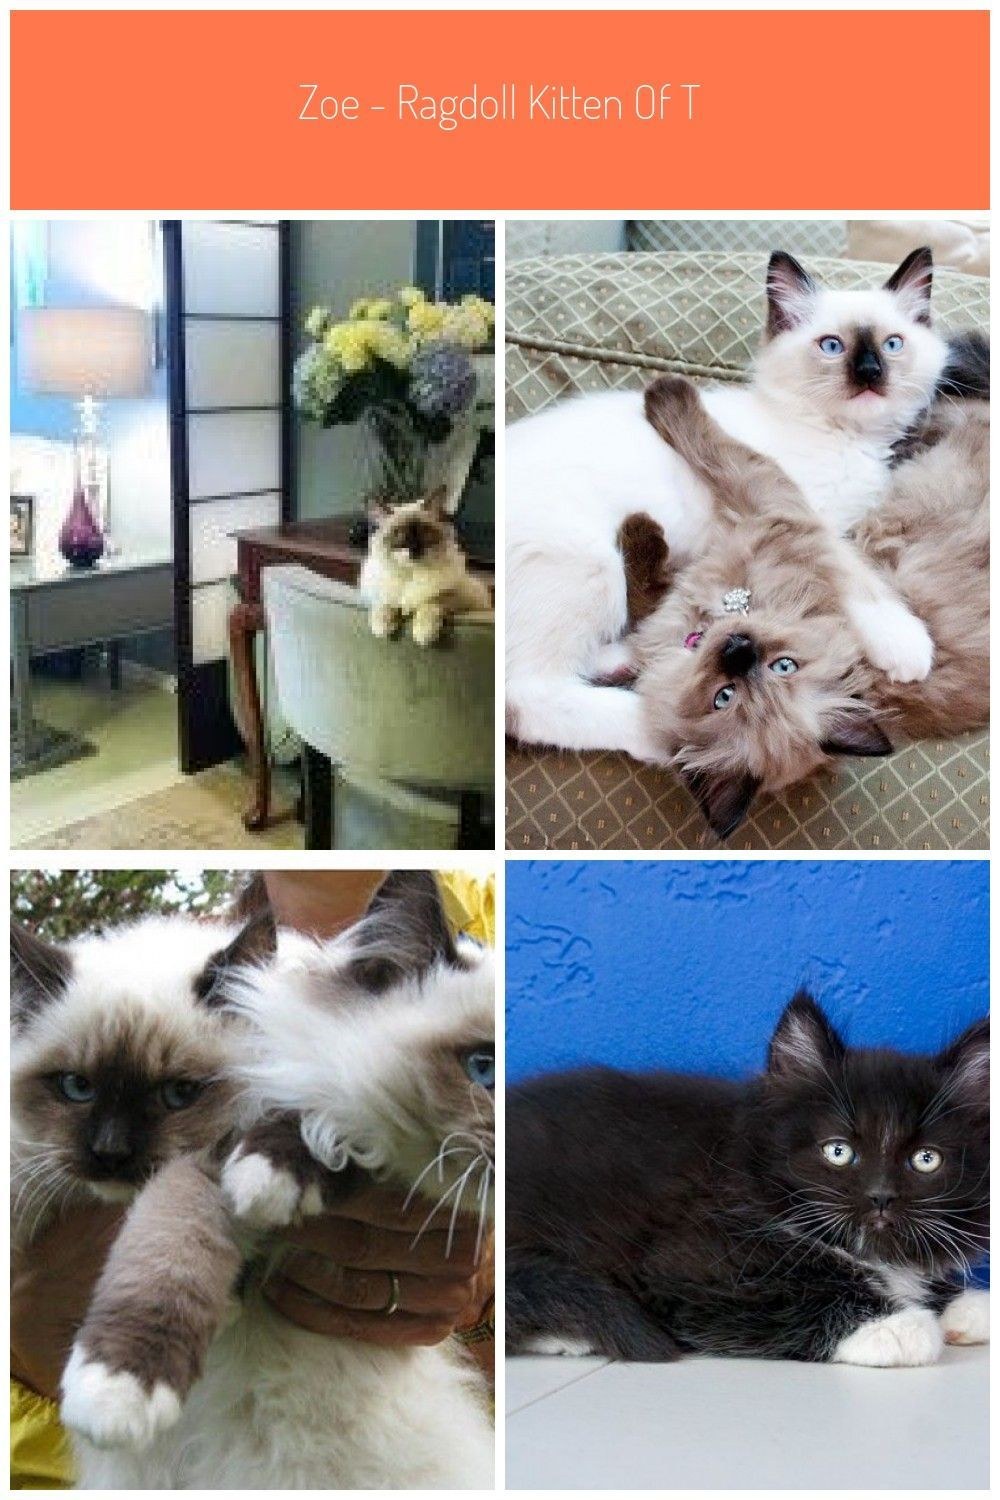 Zoe Ragdoll Kitten Of The Month Zoe Ragdoll Kitten Of The Month 4 Ragdollkittens Ragdoll Kitten Month In 2020 Ragdoll Kitten Ragdoll Ragdoll Kittens For Sale